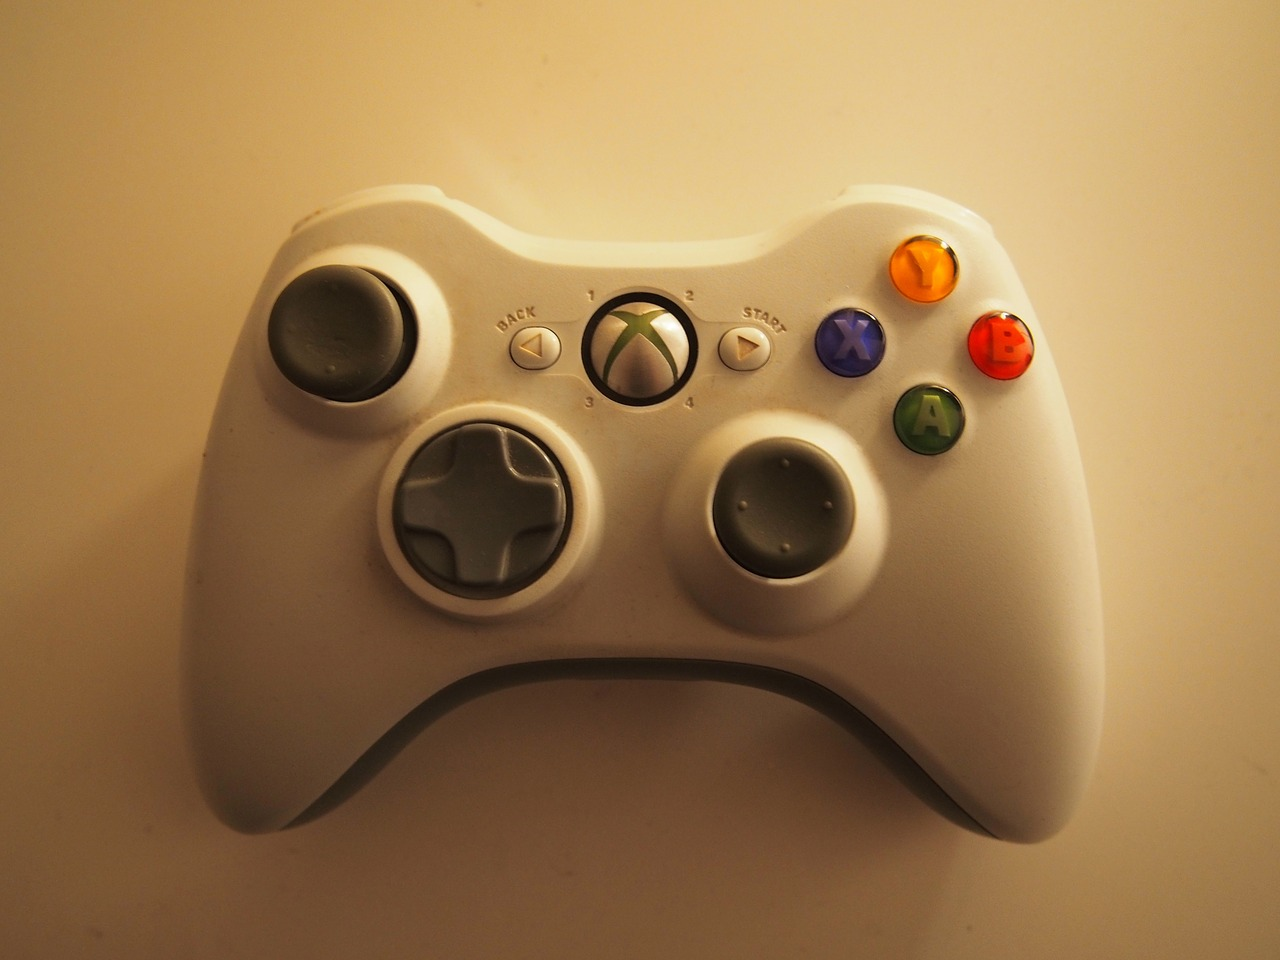 Xbox One Evil Controllers Mastermod Control Review